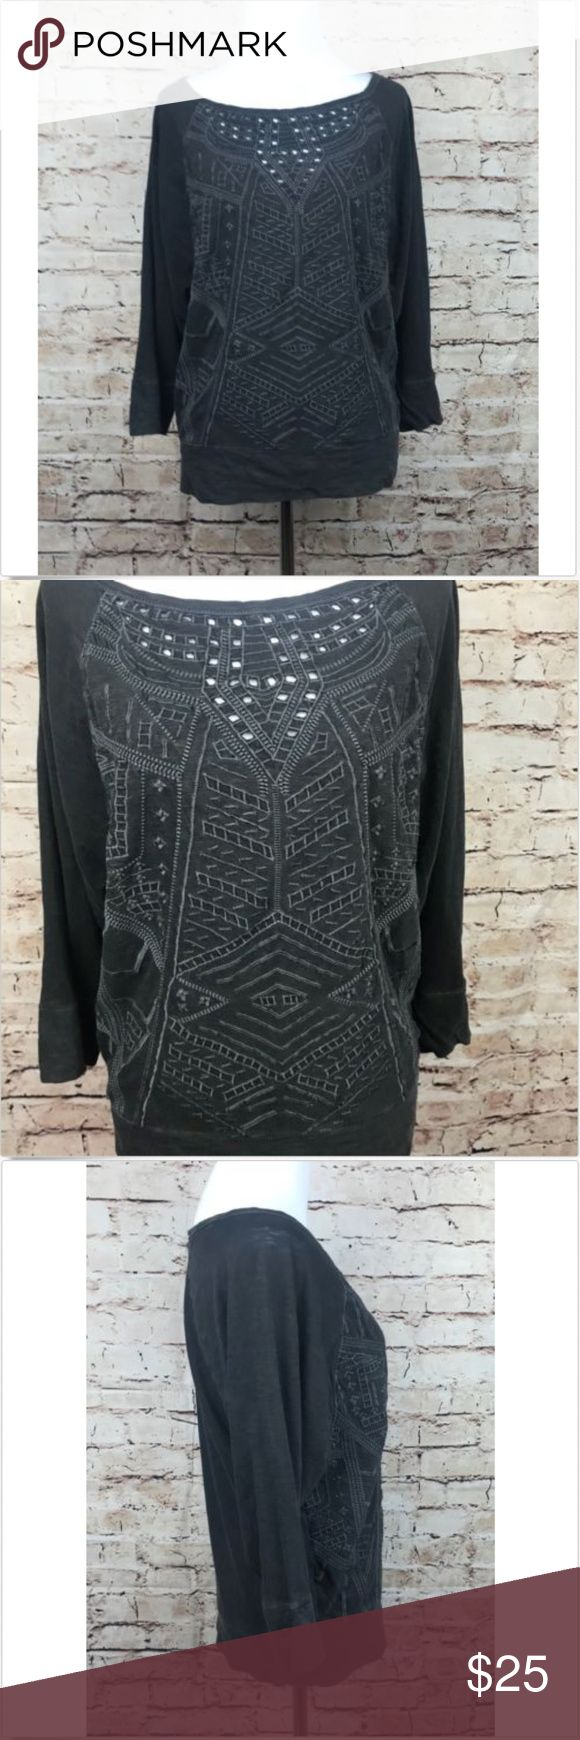 """Lucky Brand Lucky Lotus Eyelet Aztec 3/4 slv. Top Lucky Brand Lucky Lotus Women's Navy Eyelet Aztec Print Top 3/4 Sleeve New, sz S  **There is a small hole on the shoulder, that was caused when a tag was removed. It is circled in the last picture**  Measurements:   Armpit to Armpit: 18"""" Length: 22"""" Lucky Brand Tops Tees - Long Sleeve"""